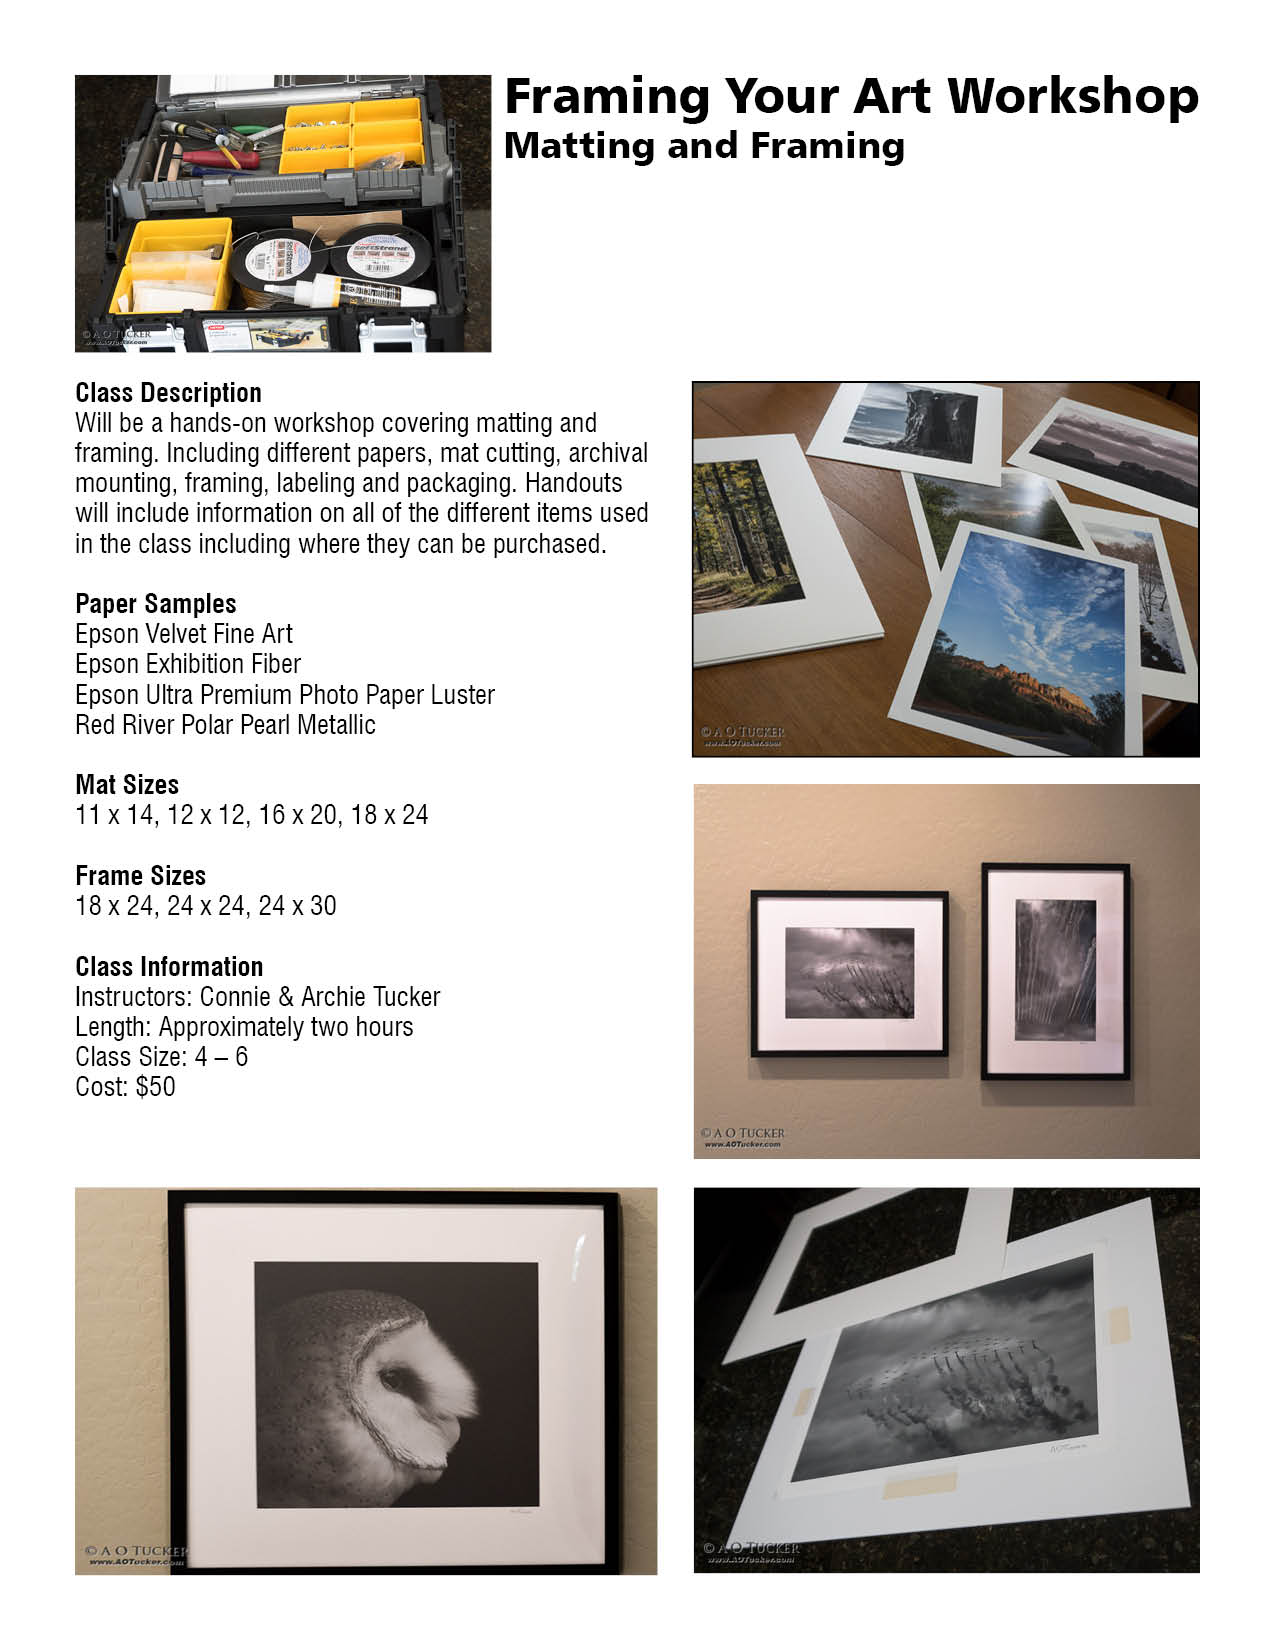 FramingWorkshopMattingFramingFlyer